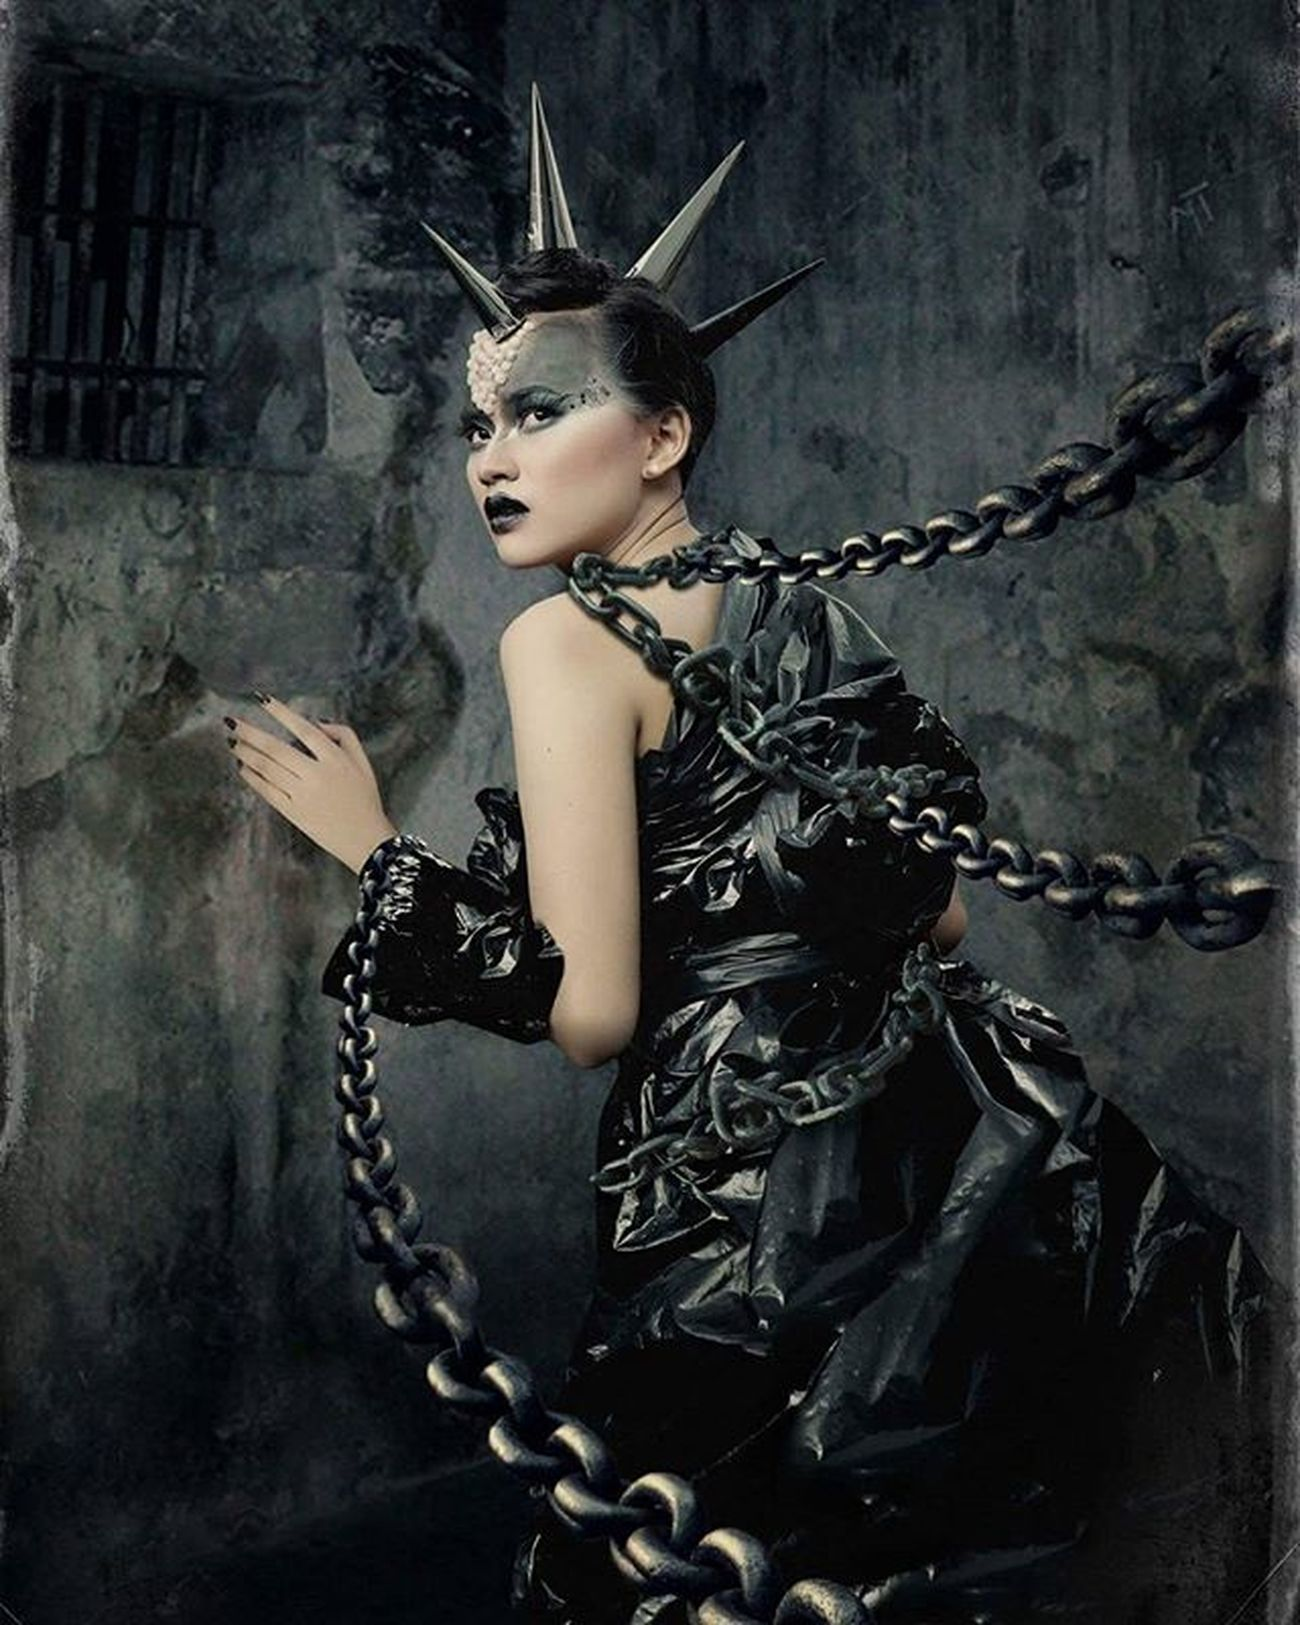 -shackled- InFrame : @alona_safir MUA : @ita_make_up_art Thanks to : @agfaphotographiart & kevin black kovenant Shackled Darkscene Digitalimaging Digitalimagingindonesia Photoshop Huscyendra Photomanipulation Dark